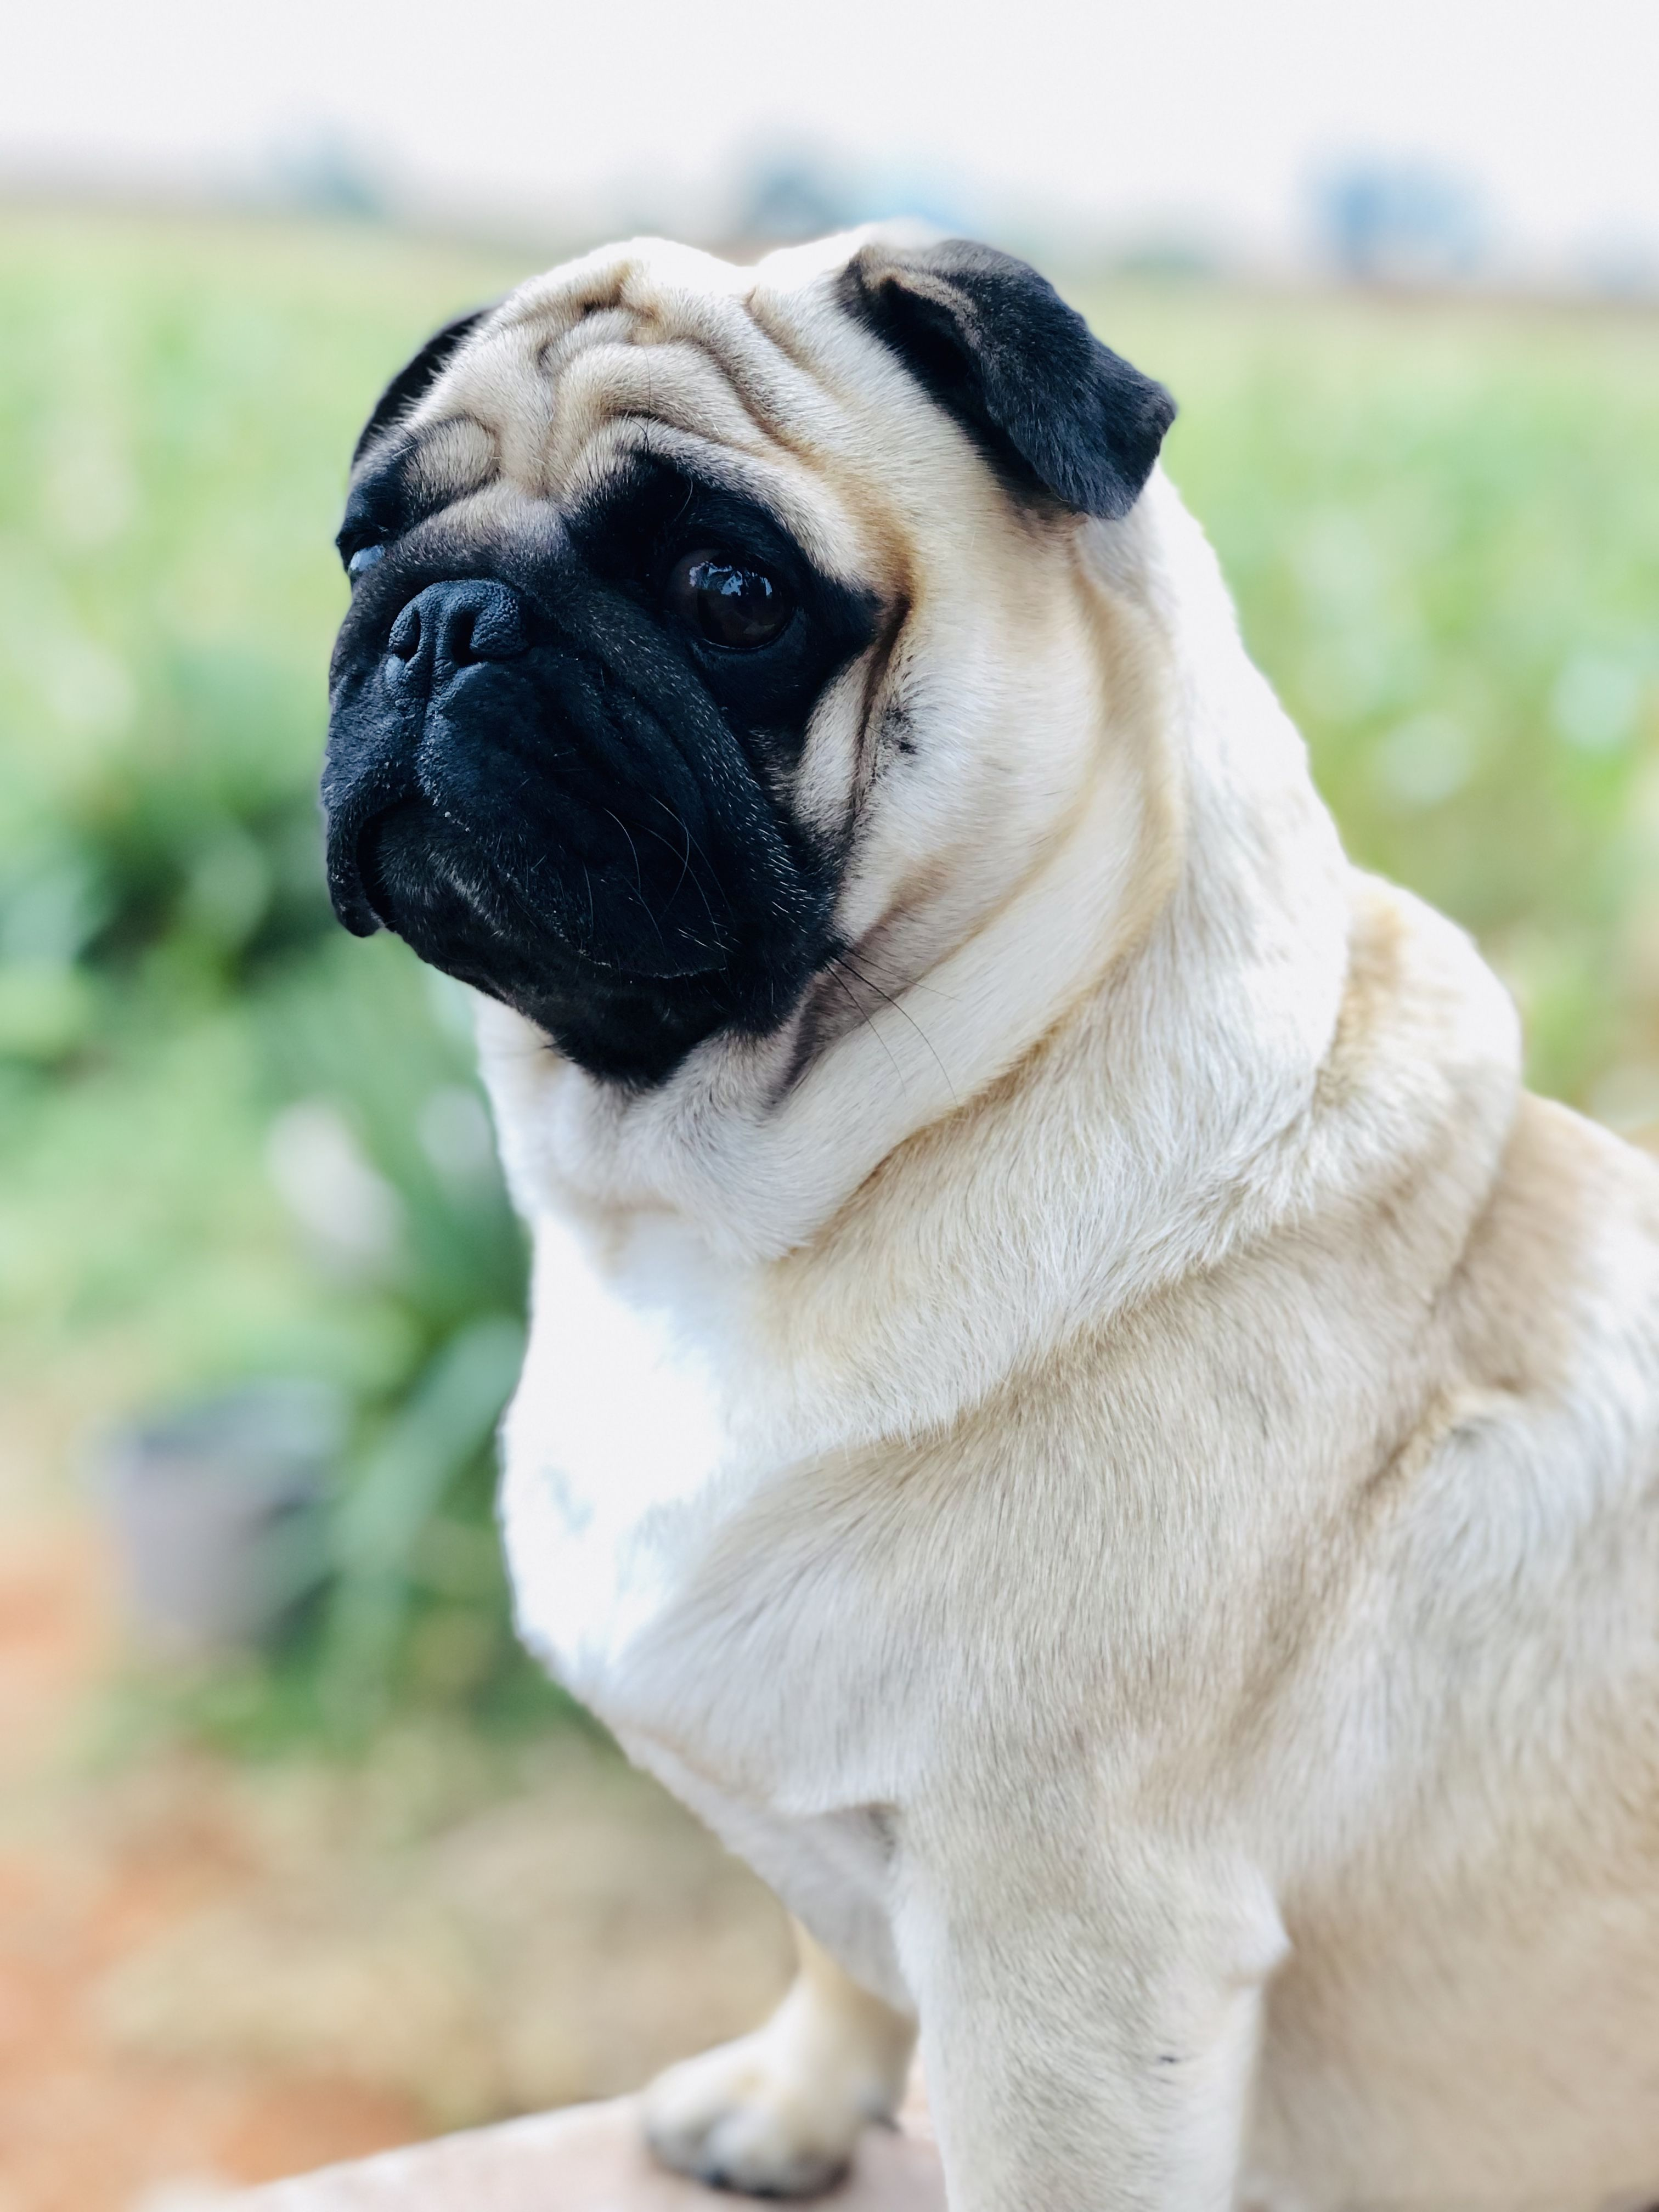 Heads Up The Snacks Are On The Way Cute Pug Puppies Pugs